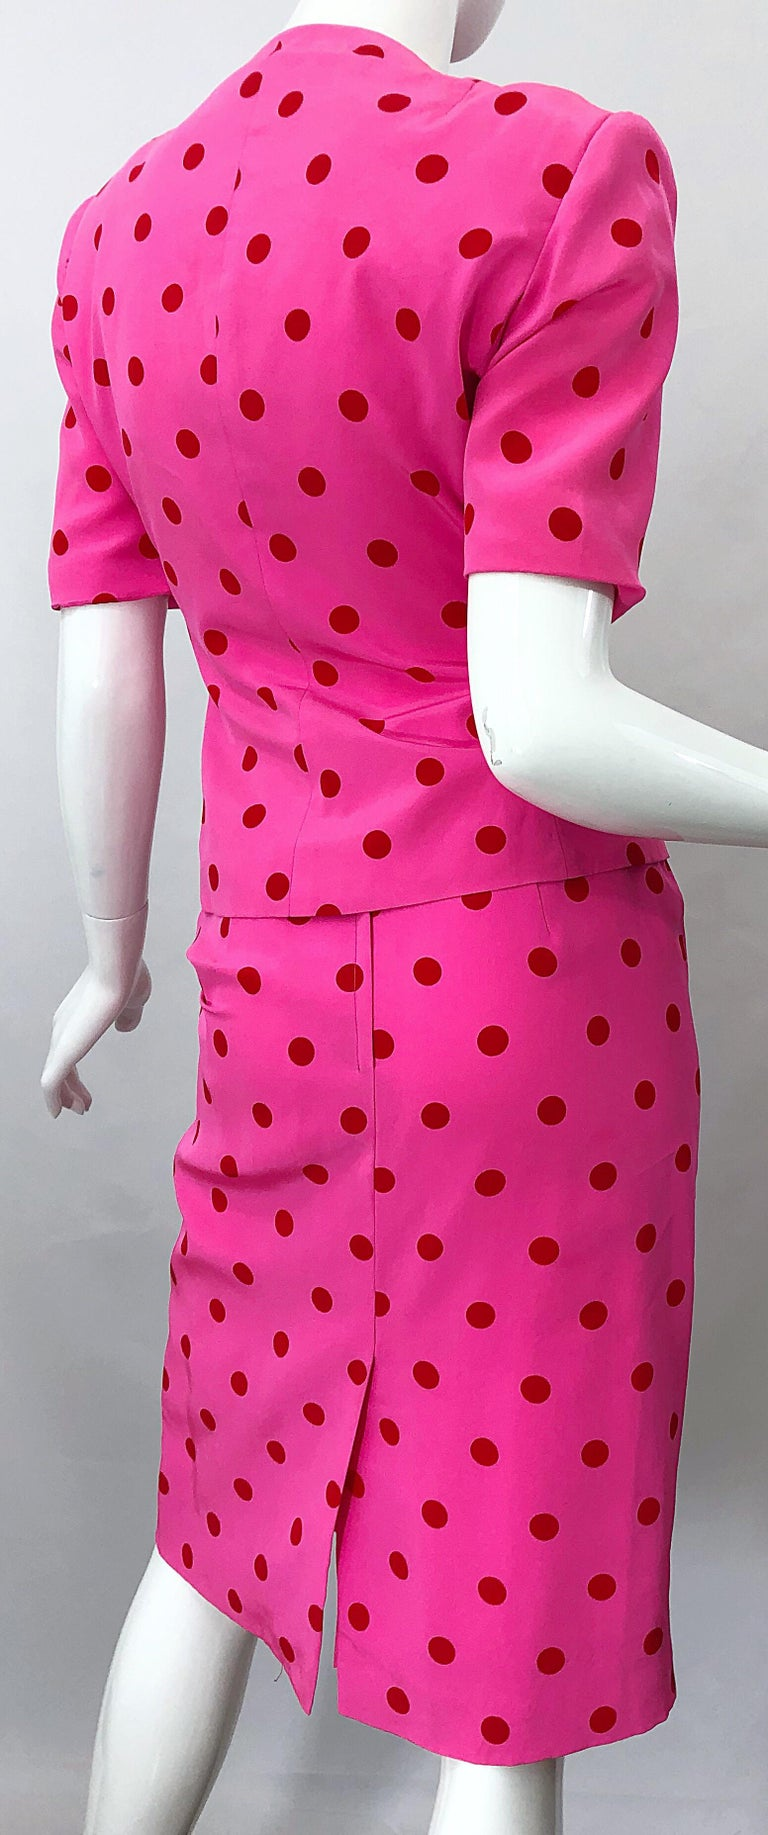 1990s David Hayes for Saks 5th Avenue Hot Pink Red Polka Dot Vintage Skirt Suit For Sale 6